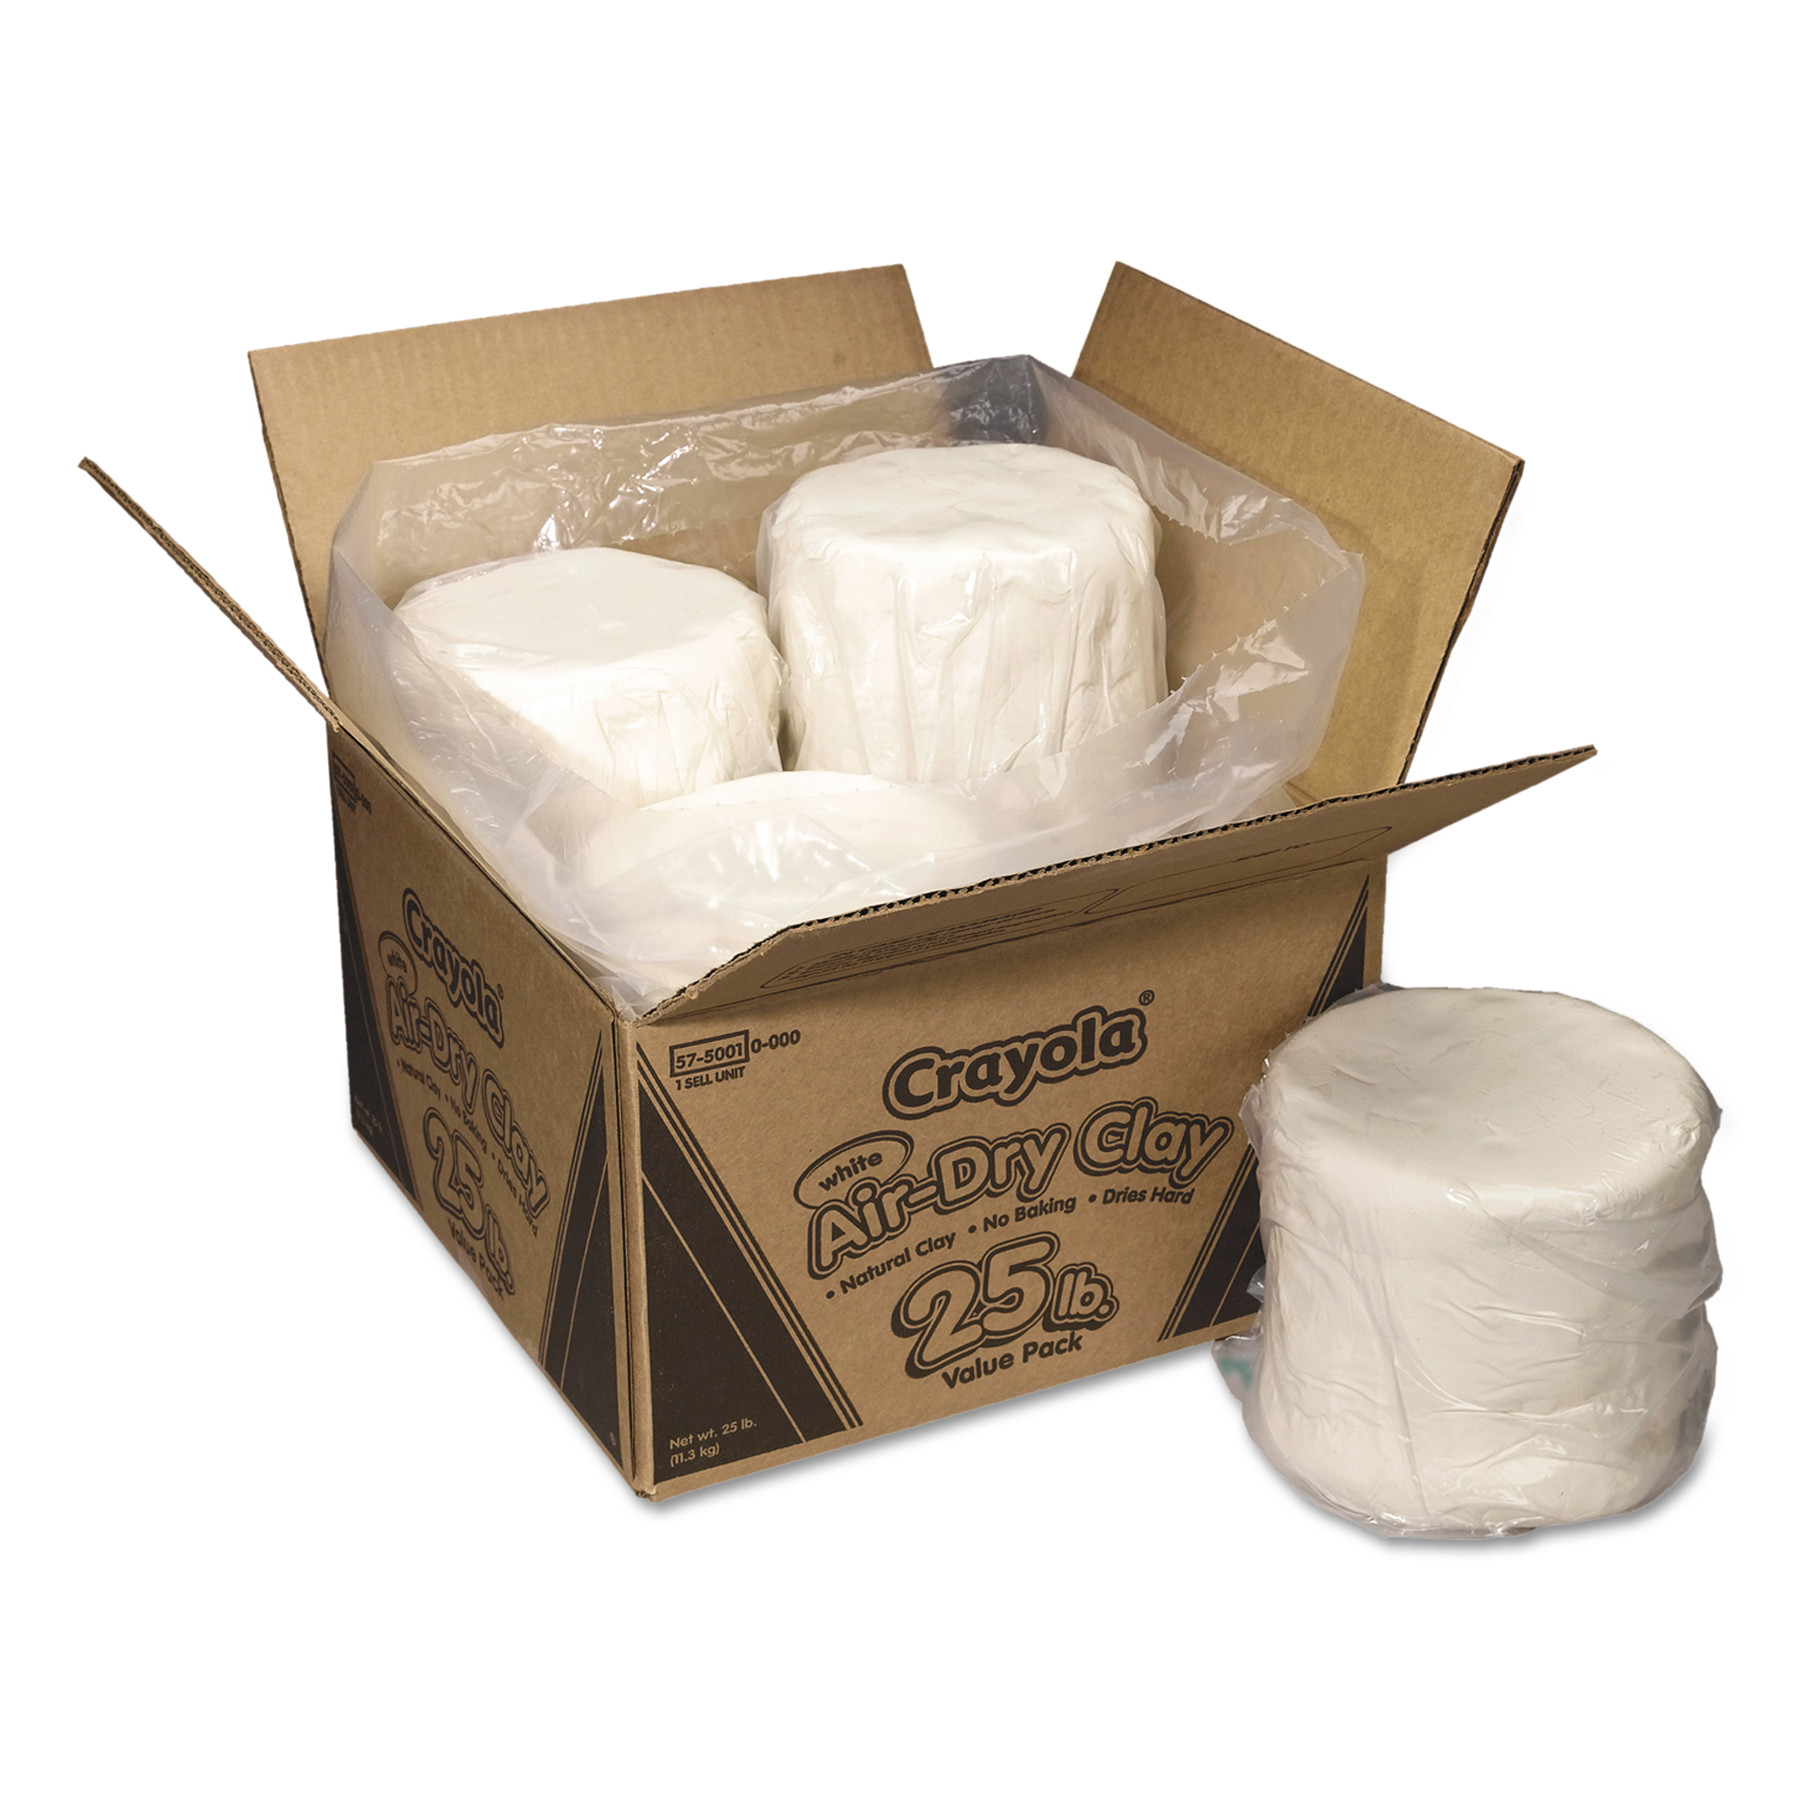 Crayola Air-Dry Clay Value Pack in White, 25-Pounds by BINNEY & SMITH / CRAYOLA